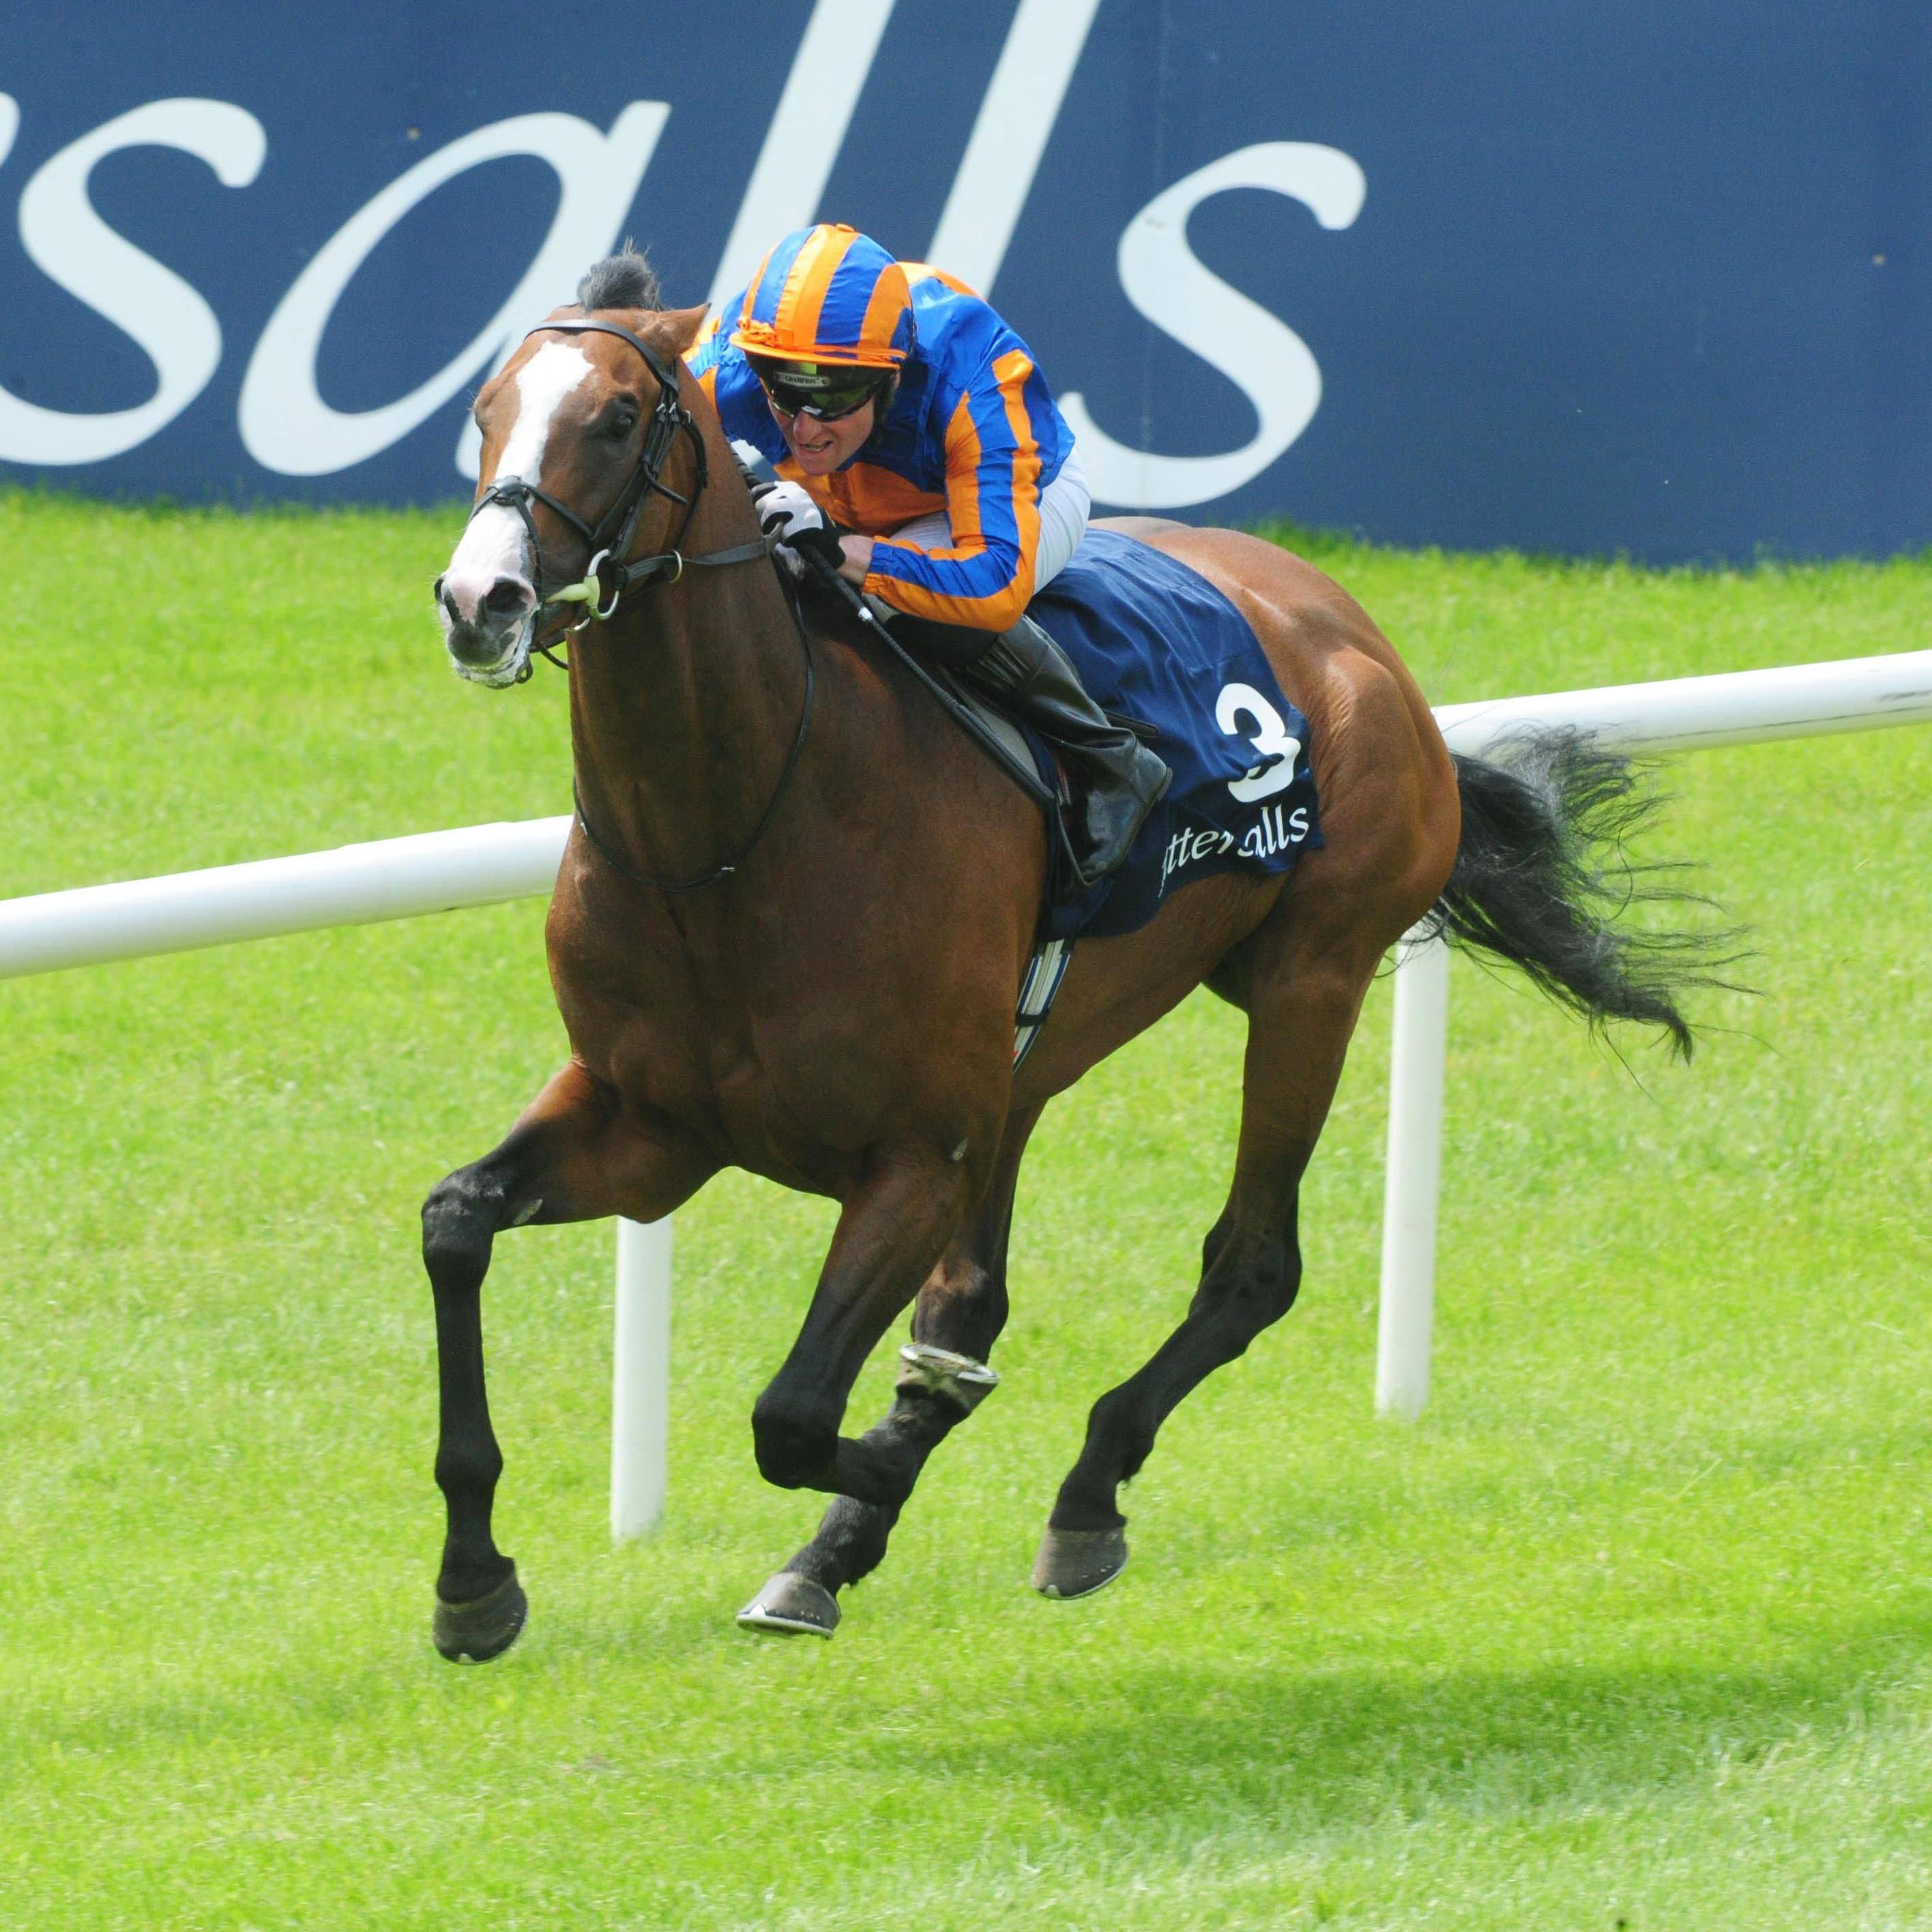 Lancaster Bomber on his way to winning the Tattersalls Gold Cup at the Curragh